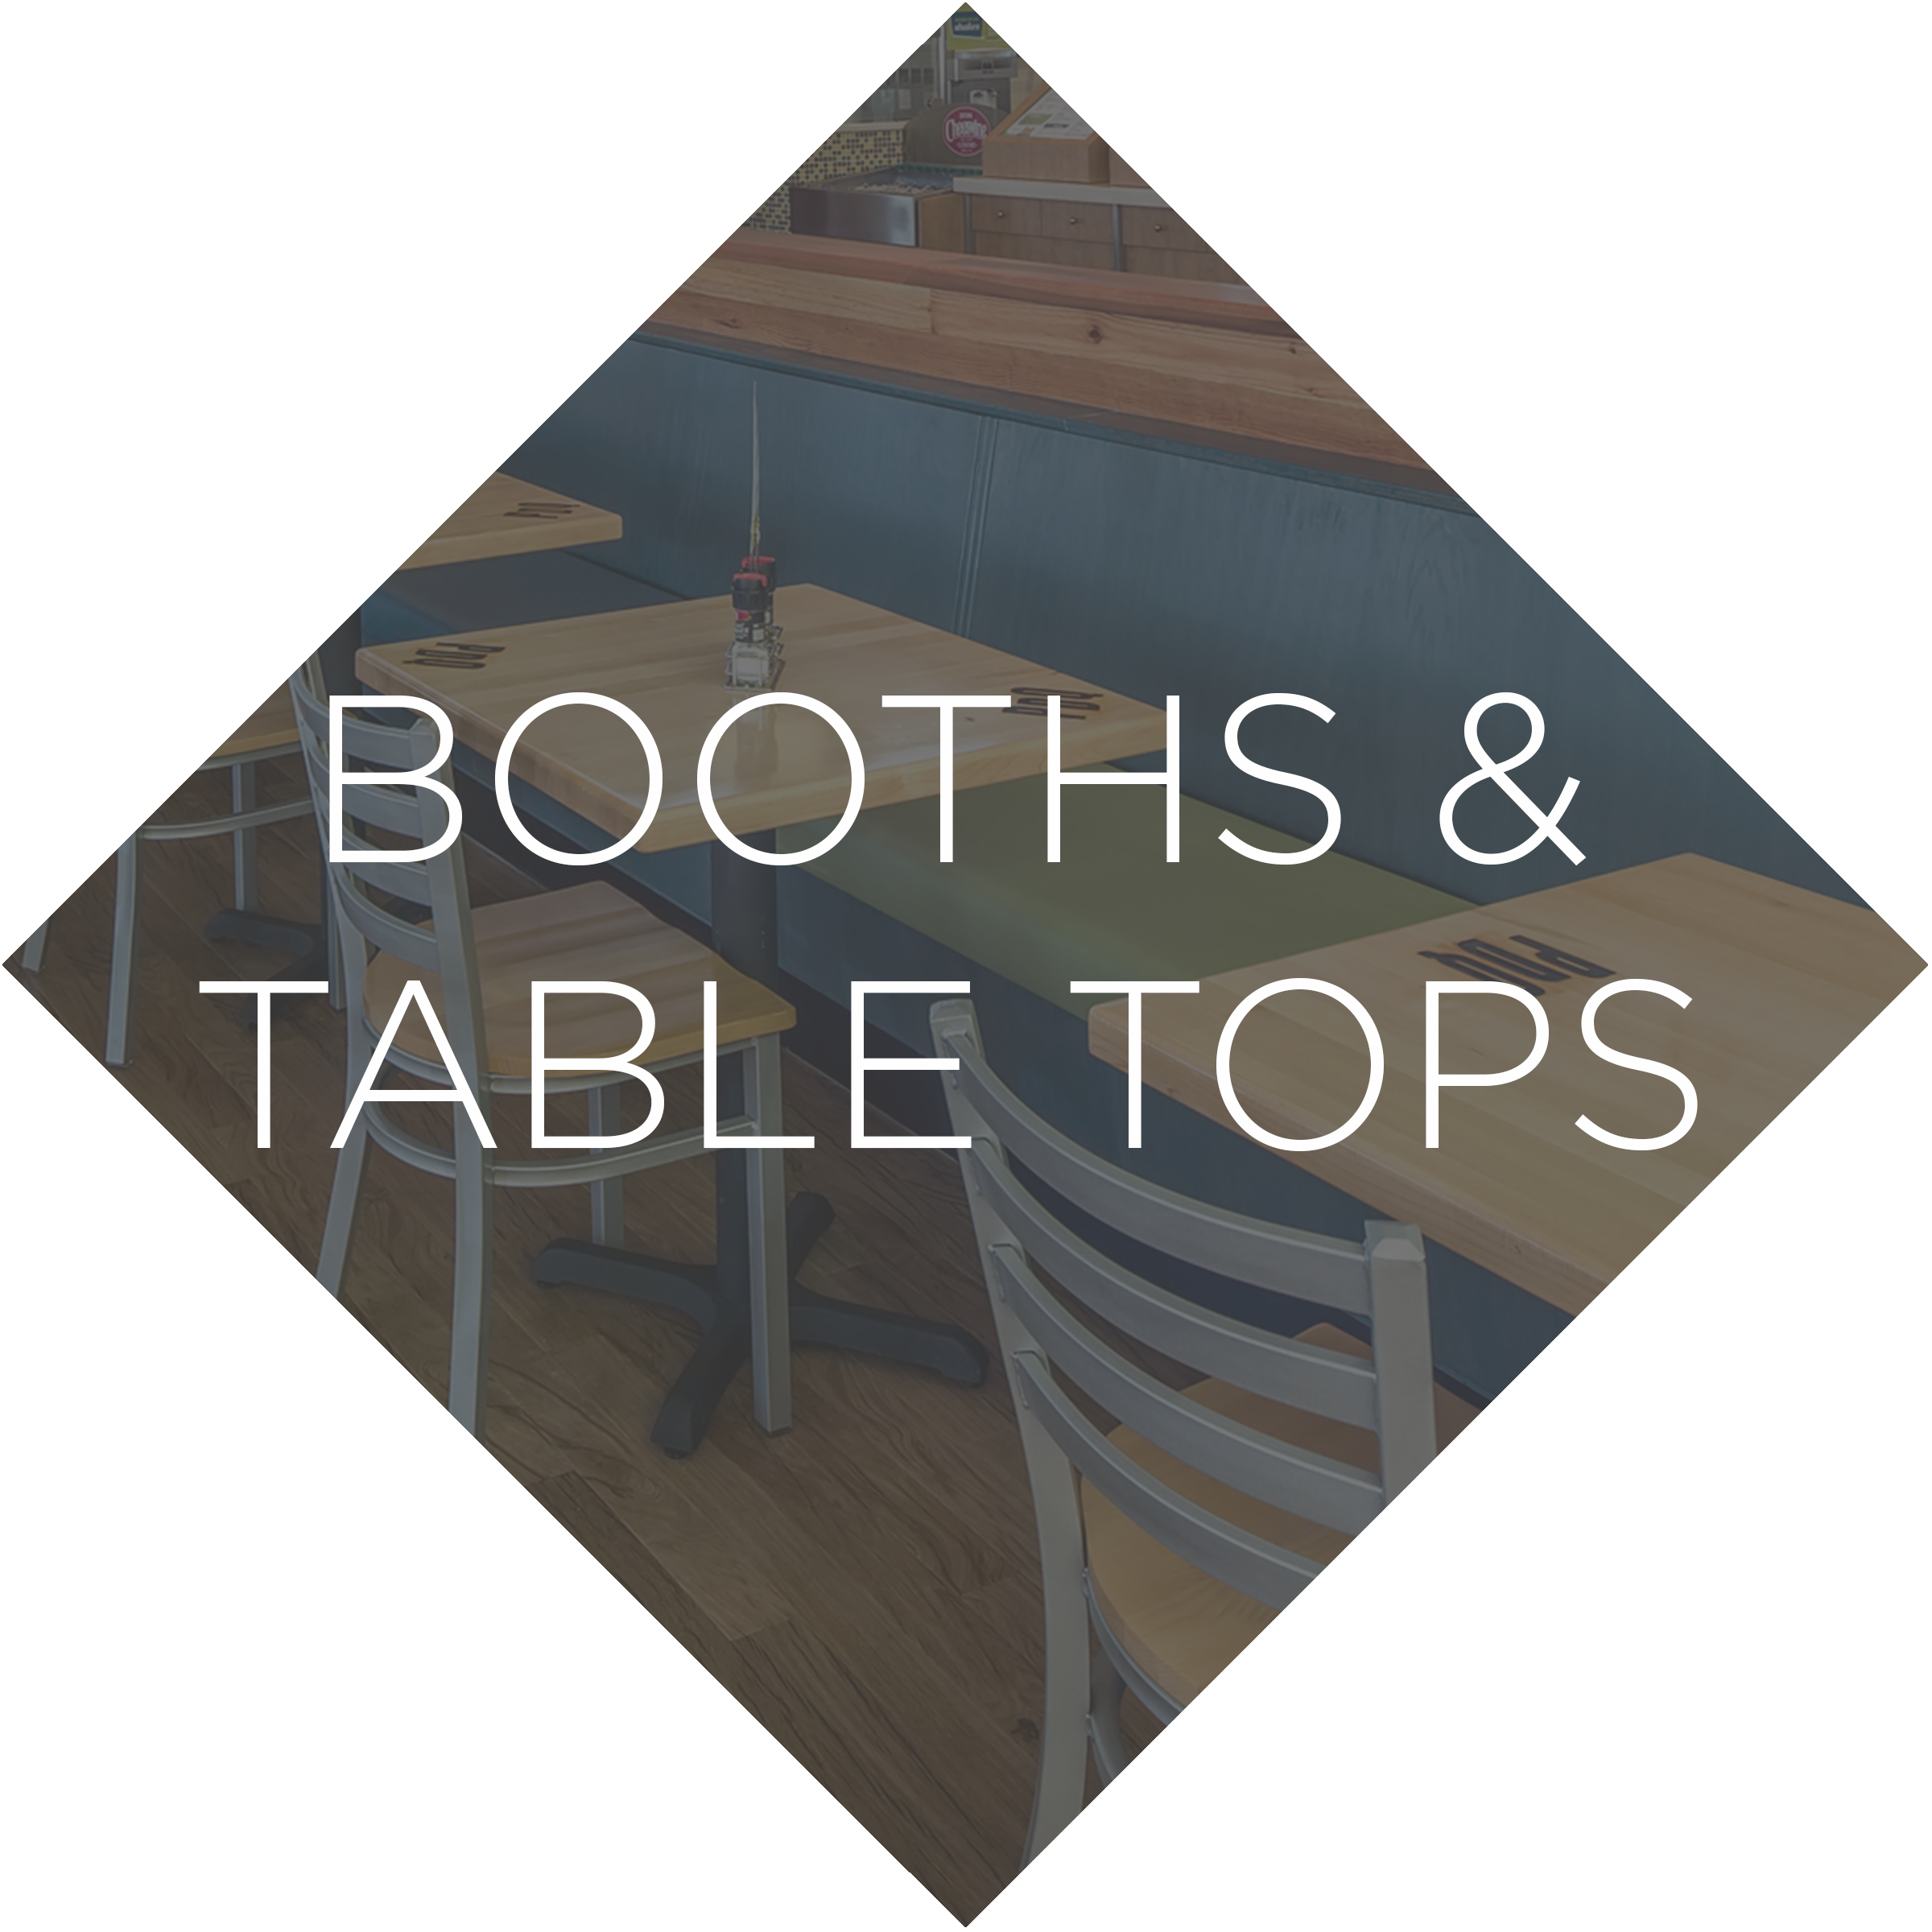 Booths and Table Tops.png